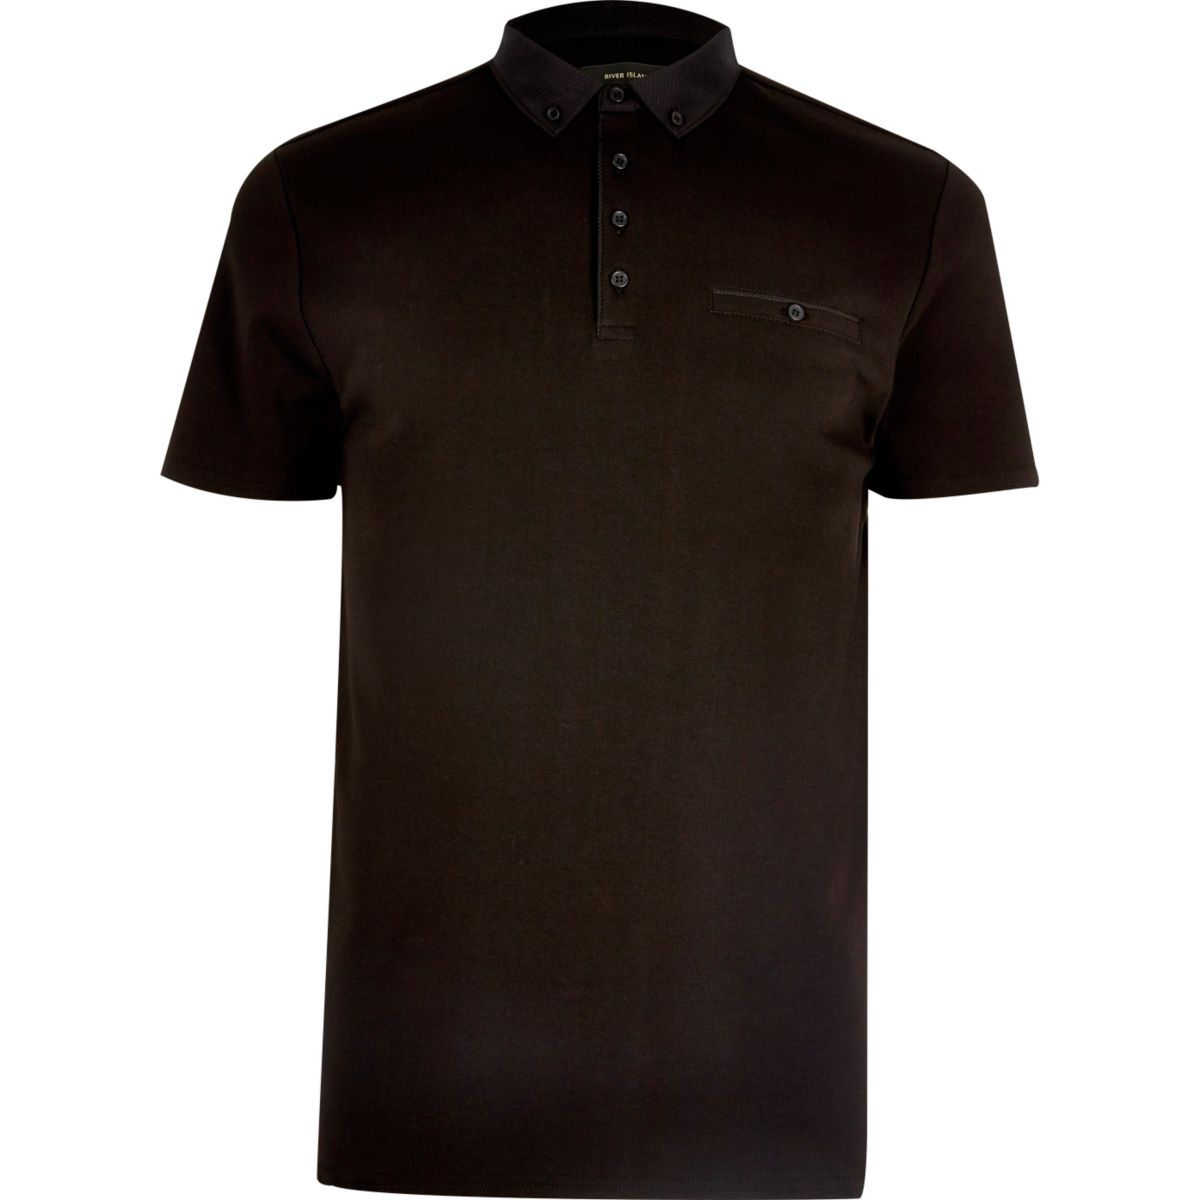 Black chest pocket polo shirt polo shirts sale men for Polo shirts for men on sale